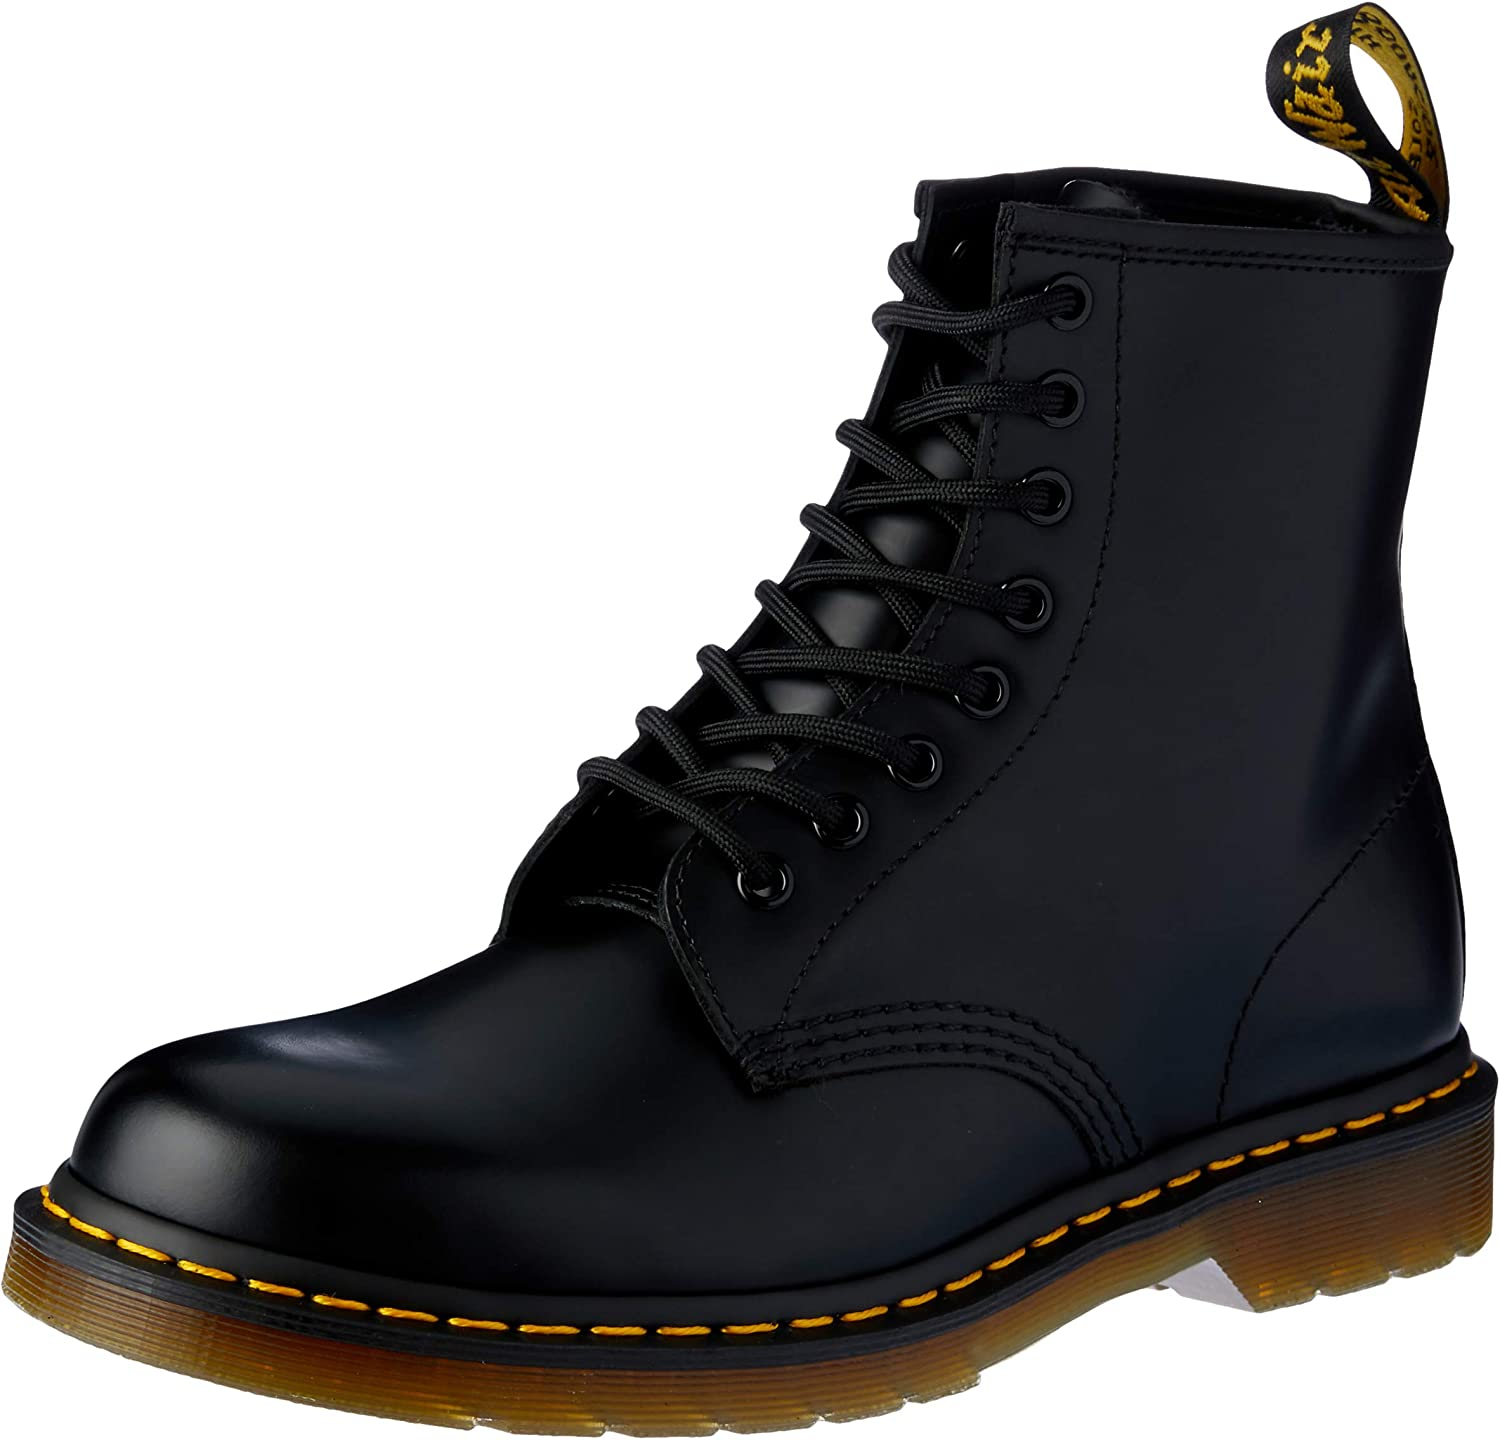 Brigantino Gregge industria  Amazon.com | Dr. Martens, 1460 Original 8-Eye Leather Boot for Men and  Women, Black Smooth, 11 US Women/10 US Men | Motorcycle & Combat